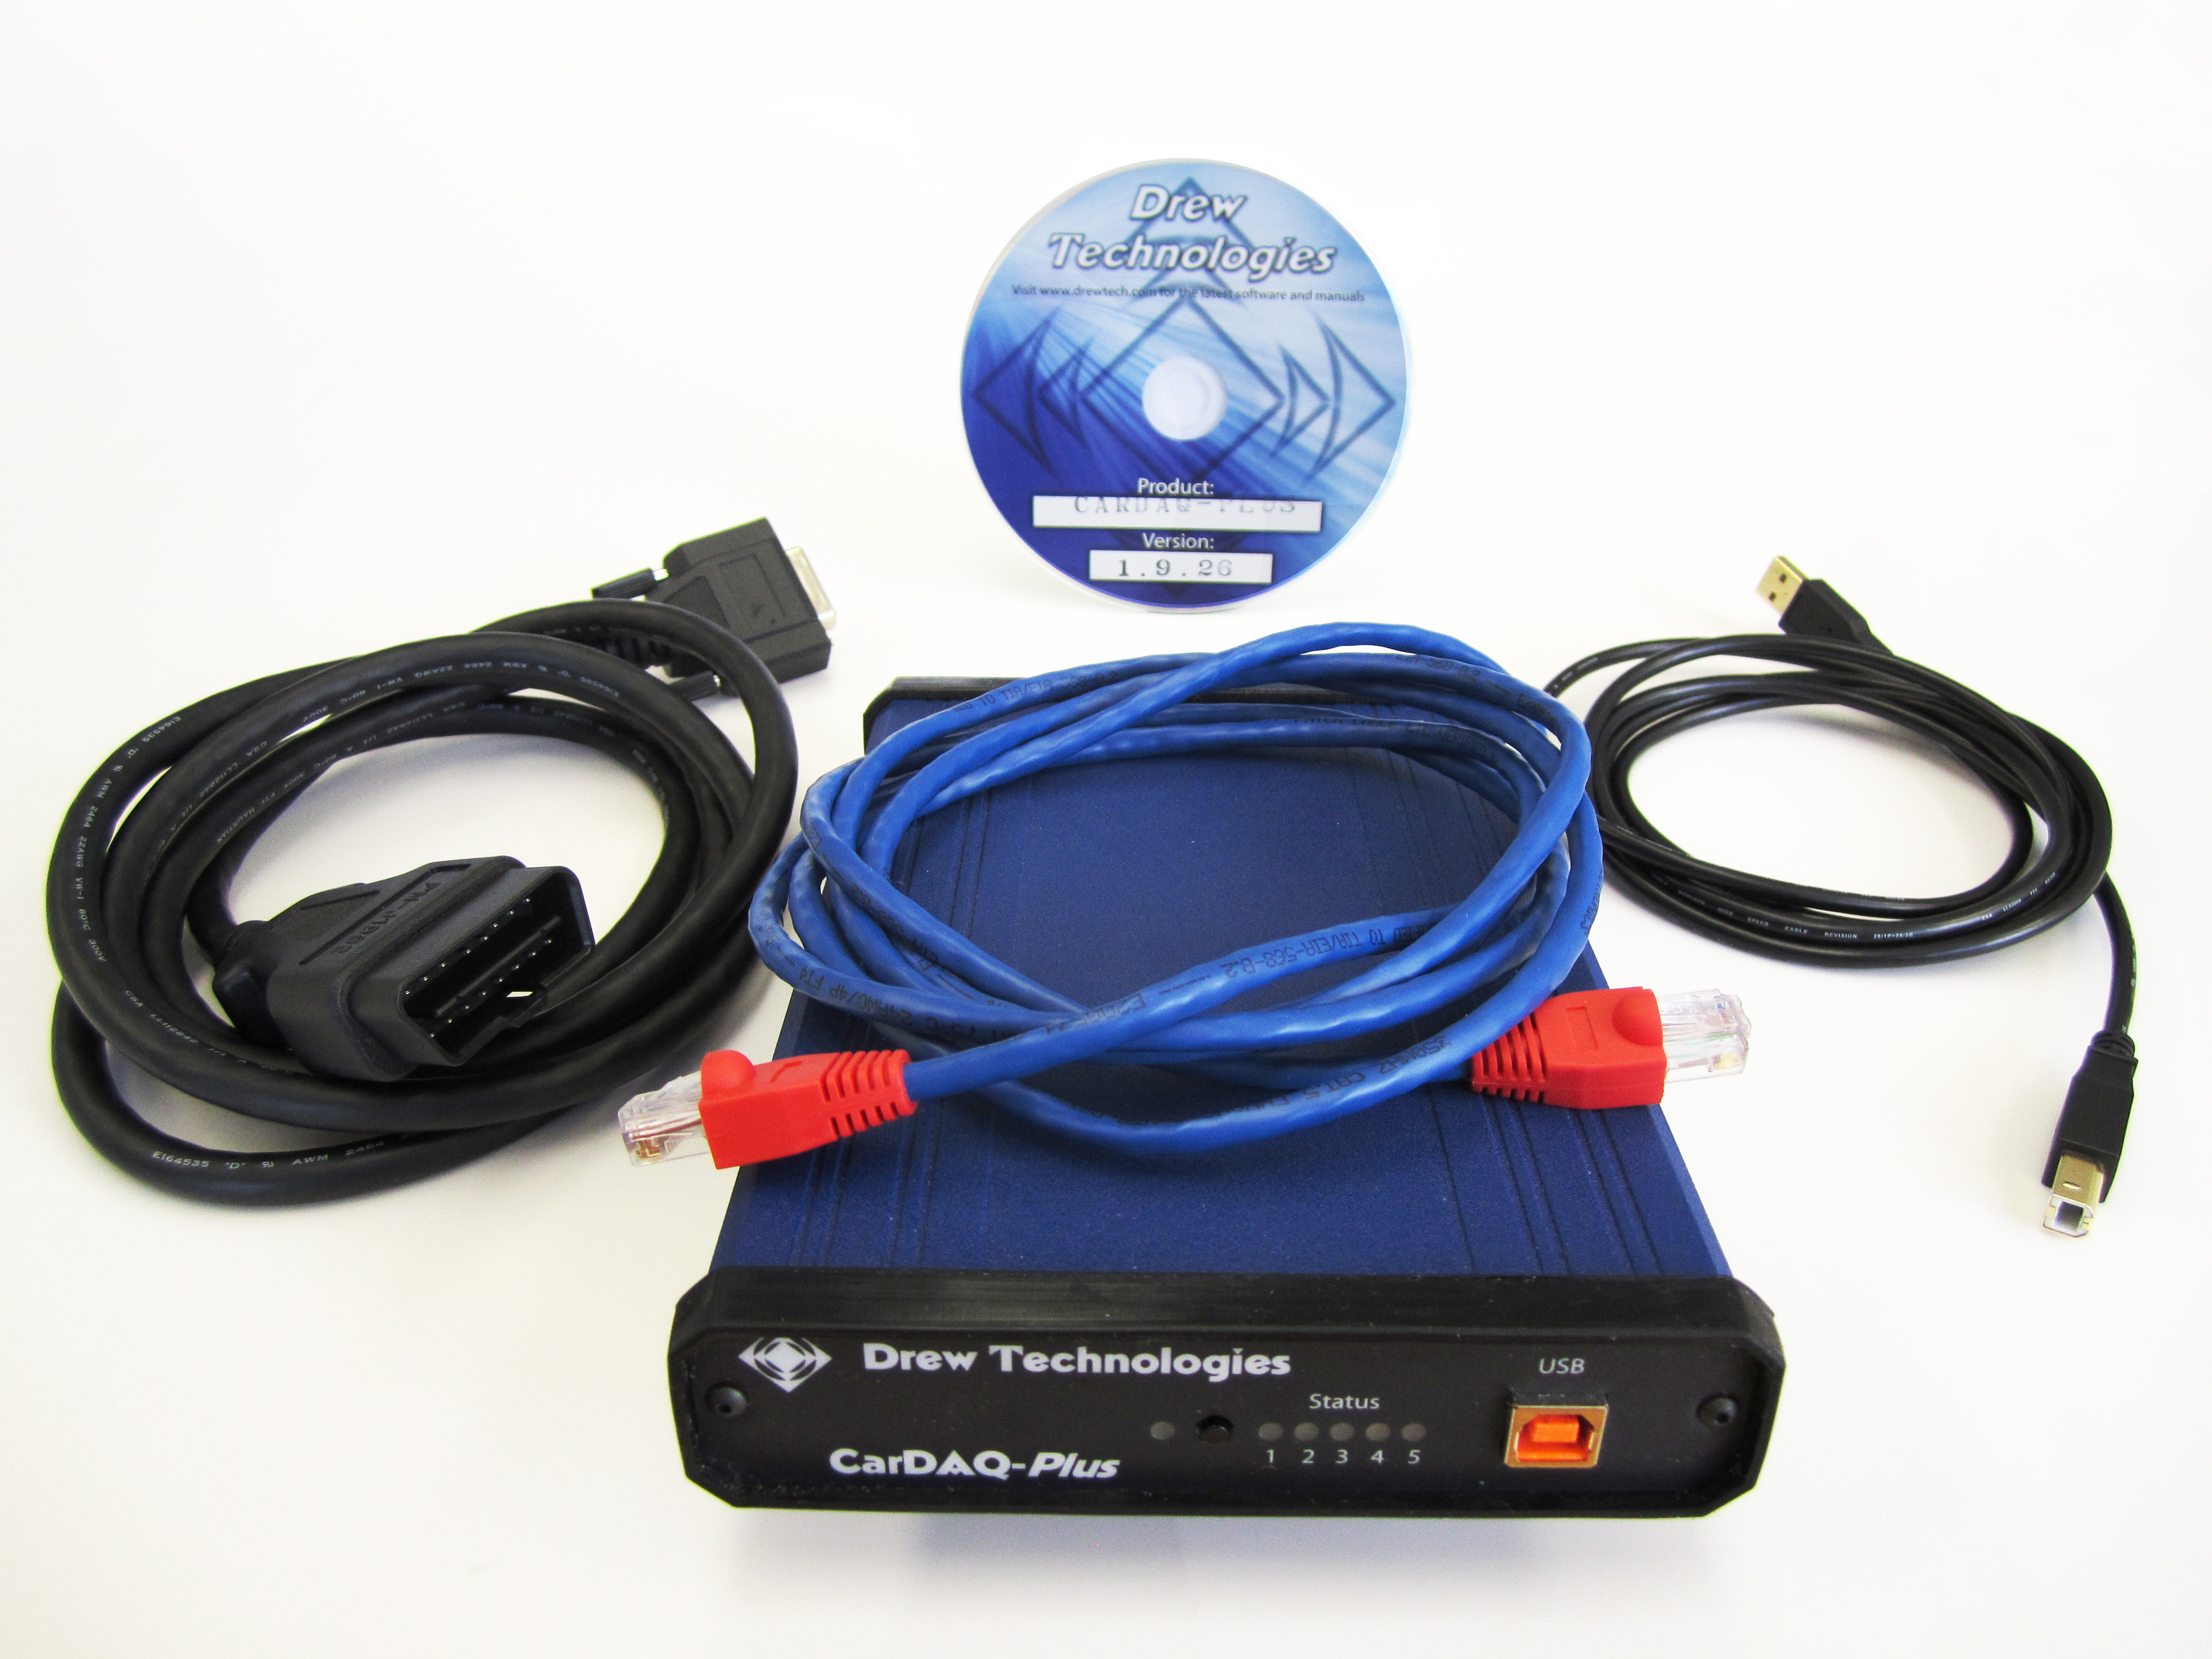 CarDAQ-Plus-Kit with OBD2 cable, Drew Technologies